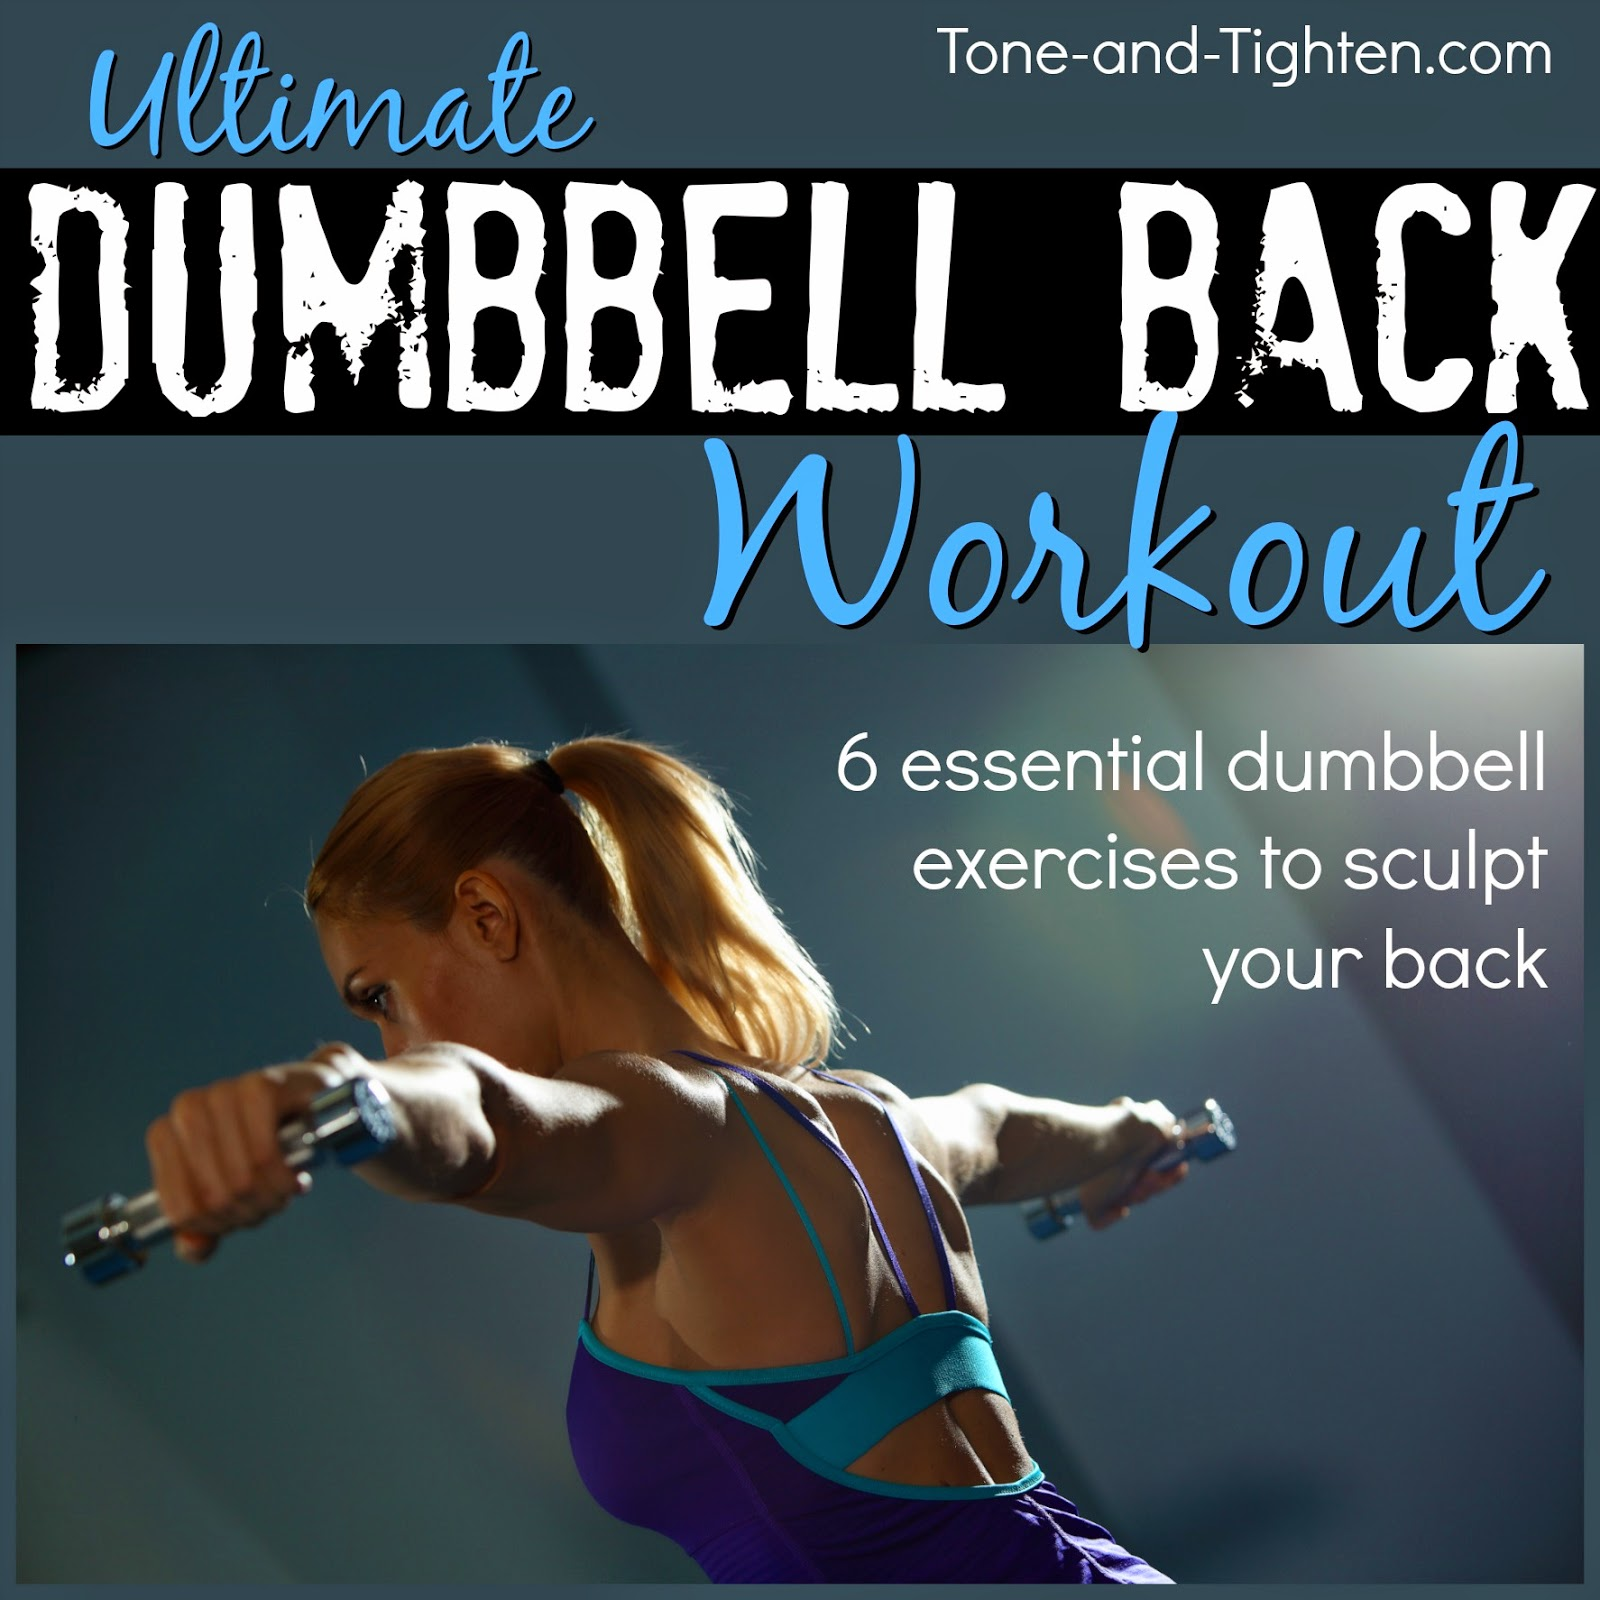 Dumbbell back workout – Best dumbbell exercises for your back | Tone